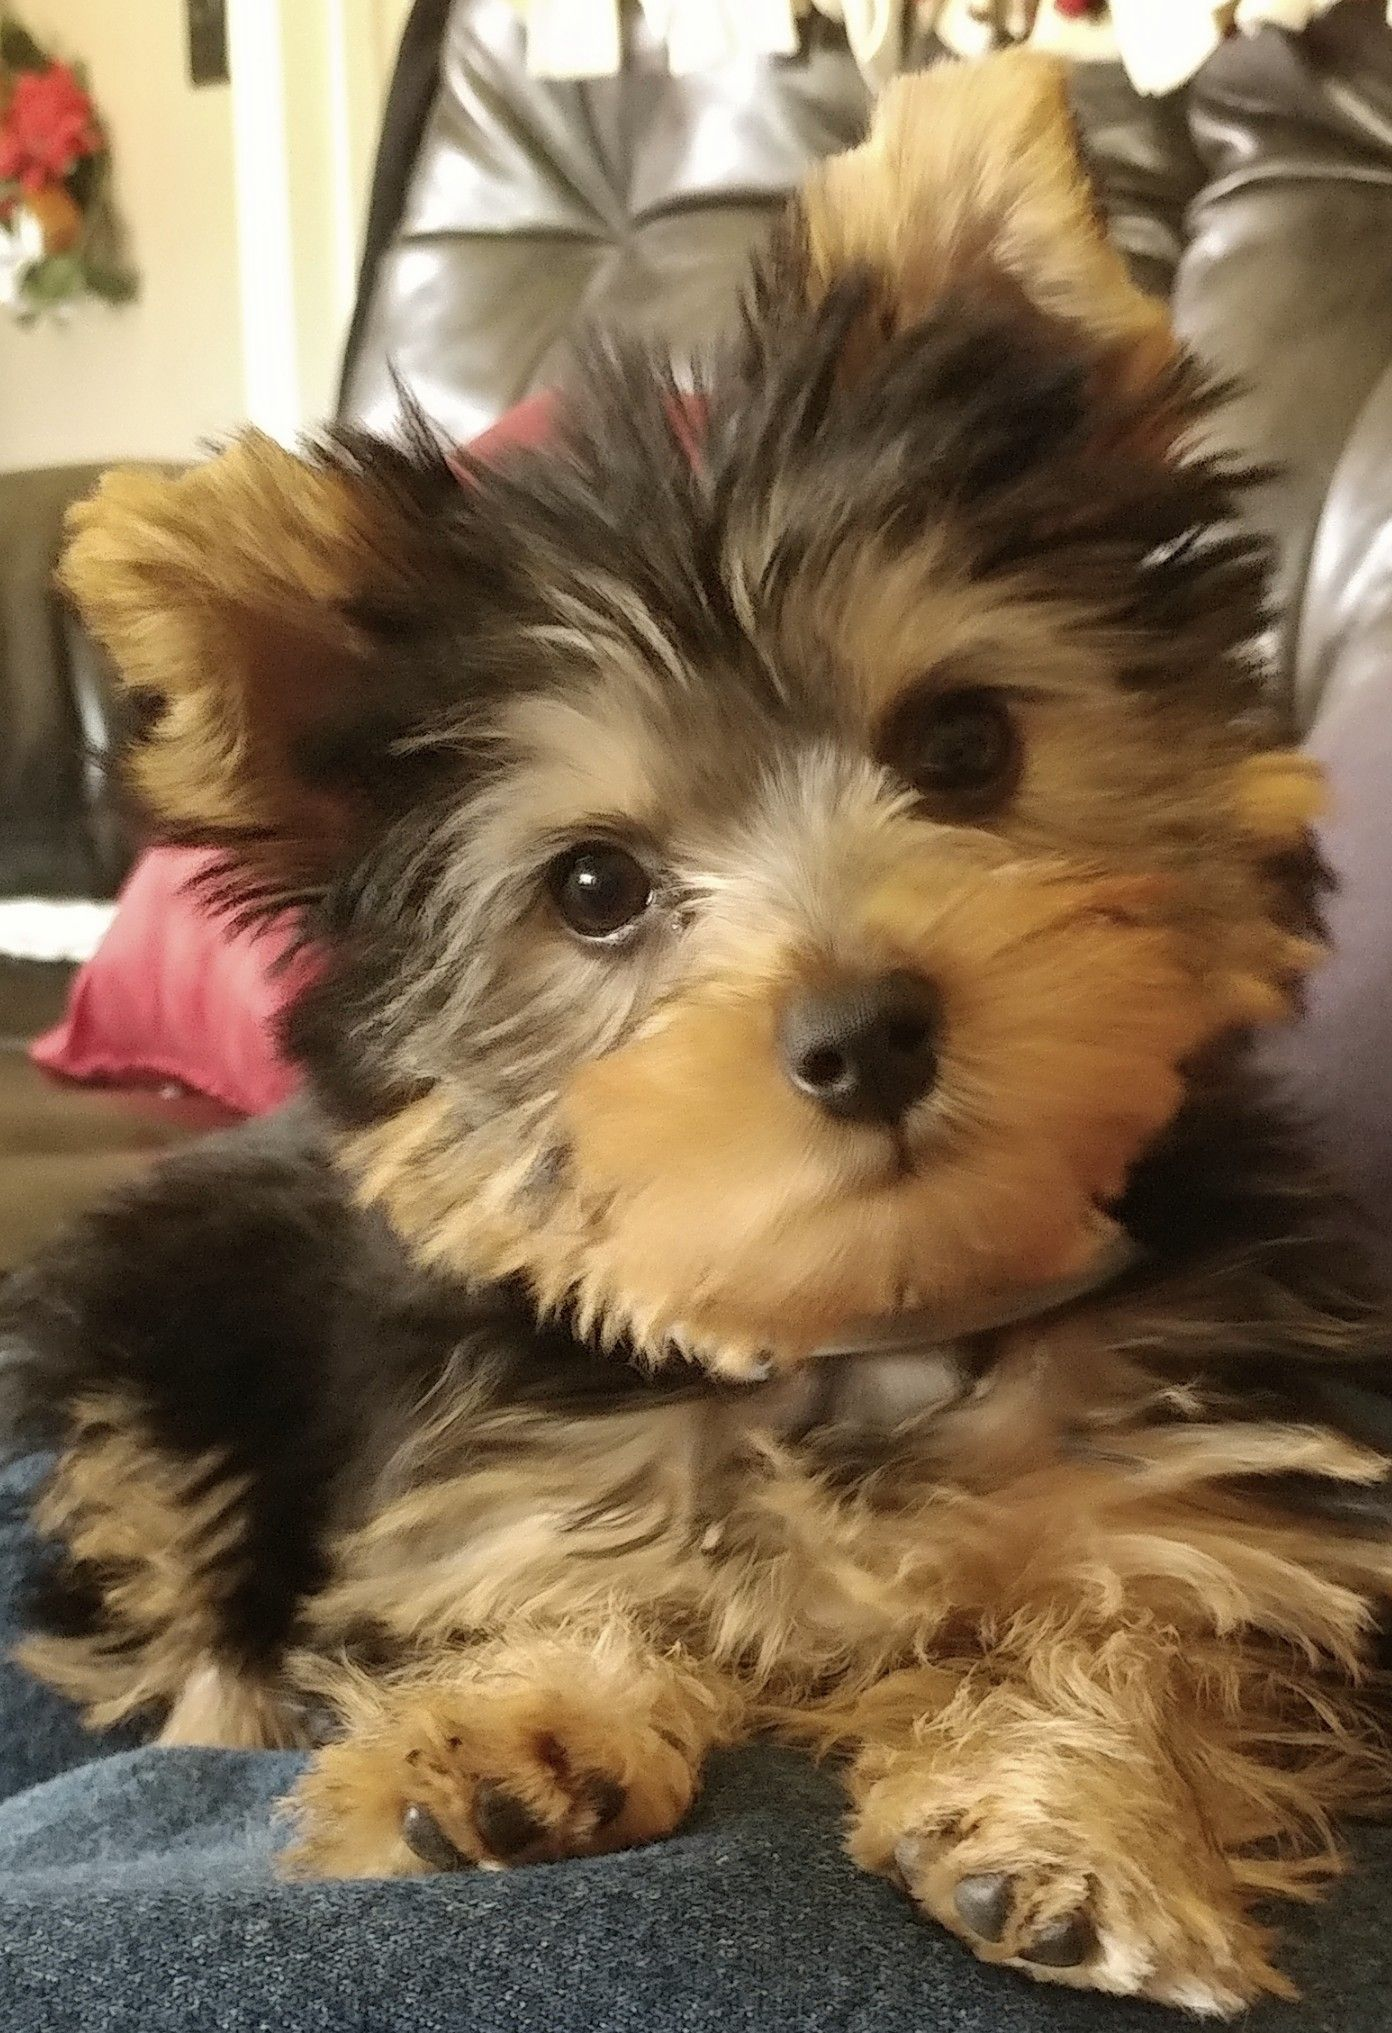 My Baby Boy Yorkie S Ears Popped Up Yorkie Dog Rules Puppies